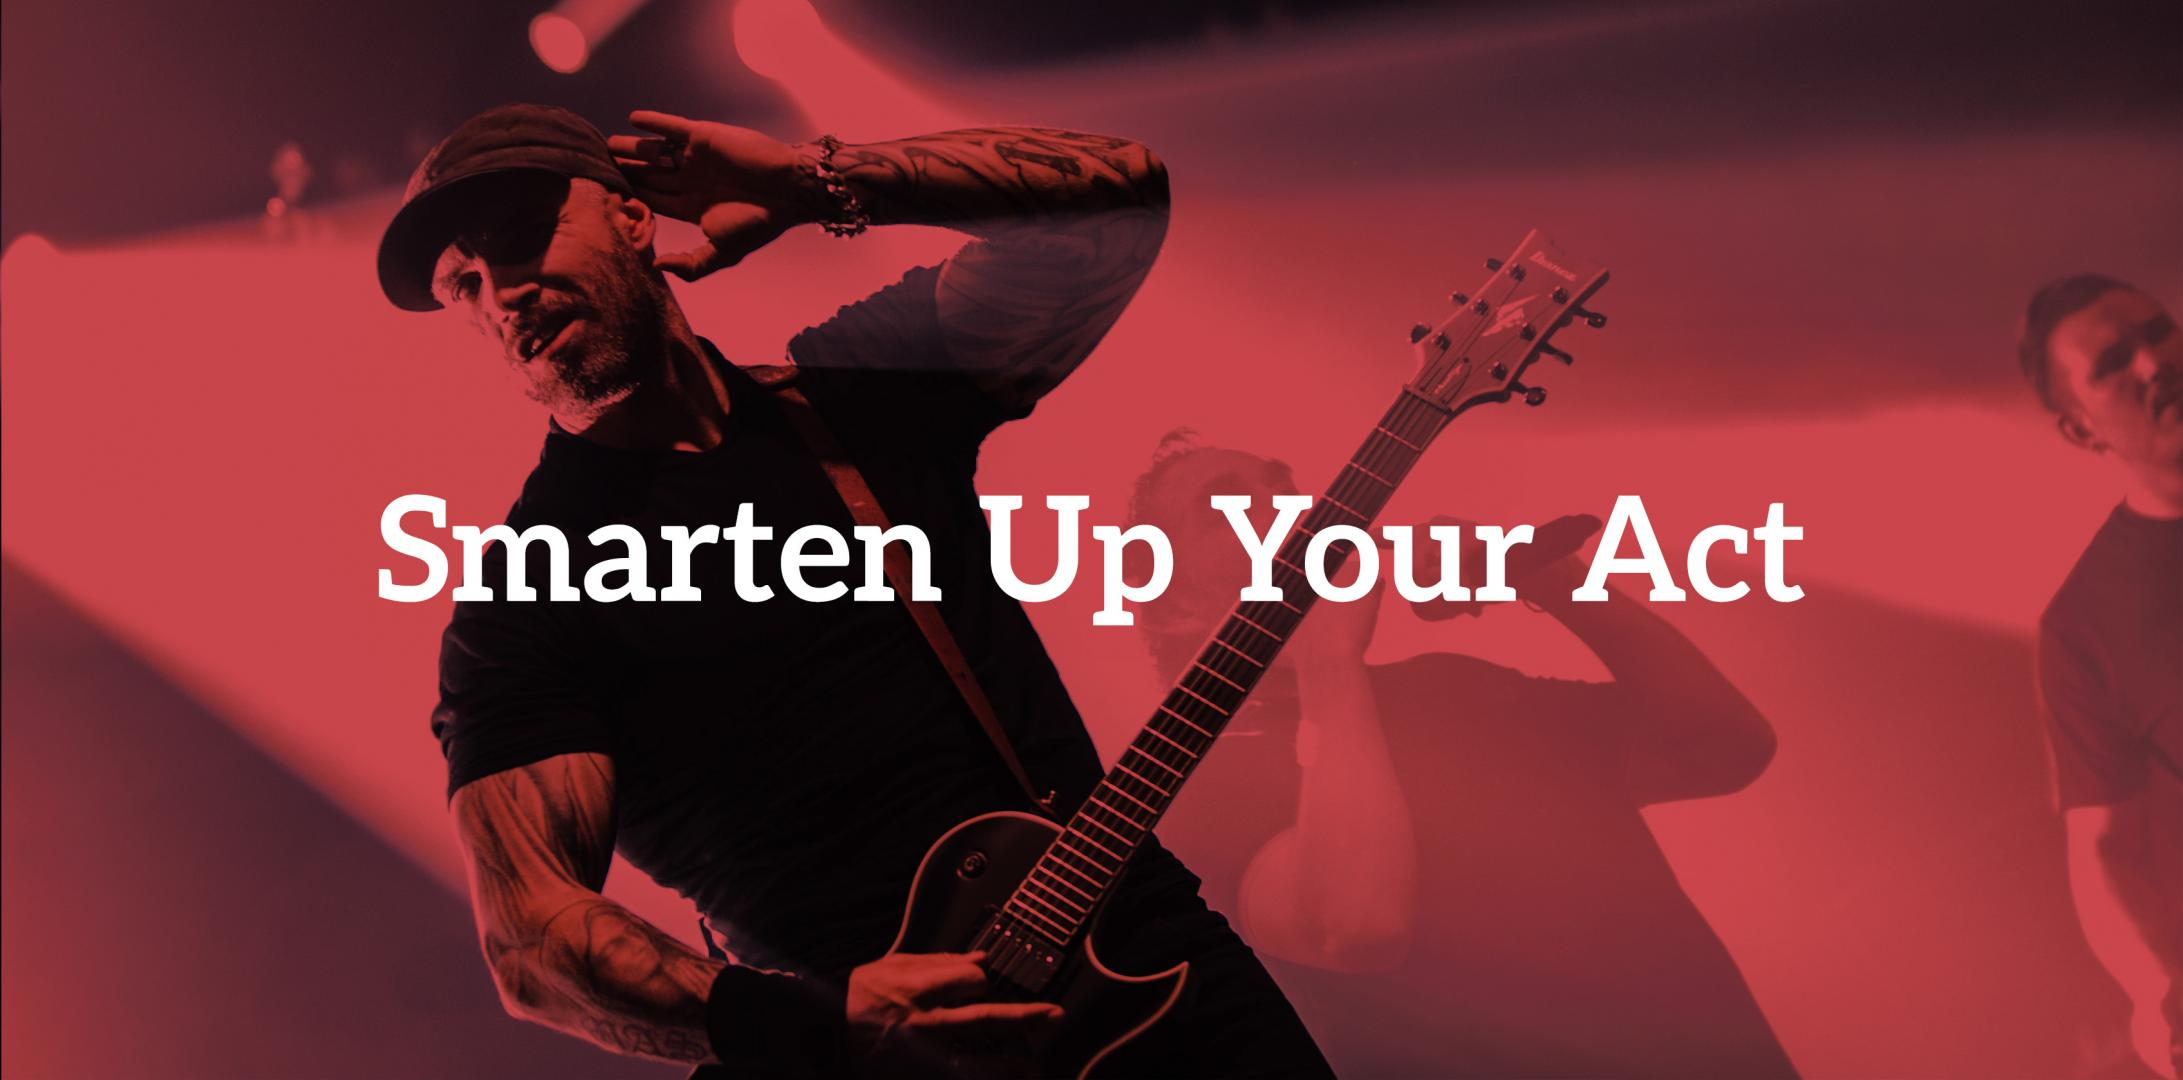 12 Ways To Make People Fall In Love With Your Music: Smarten Up Your Act